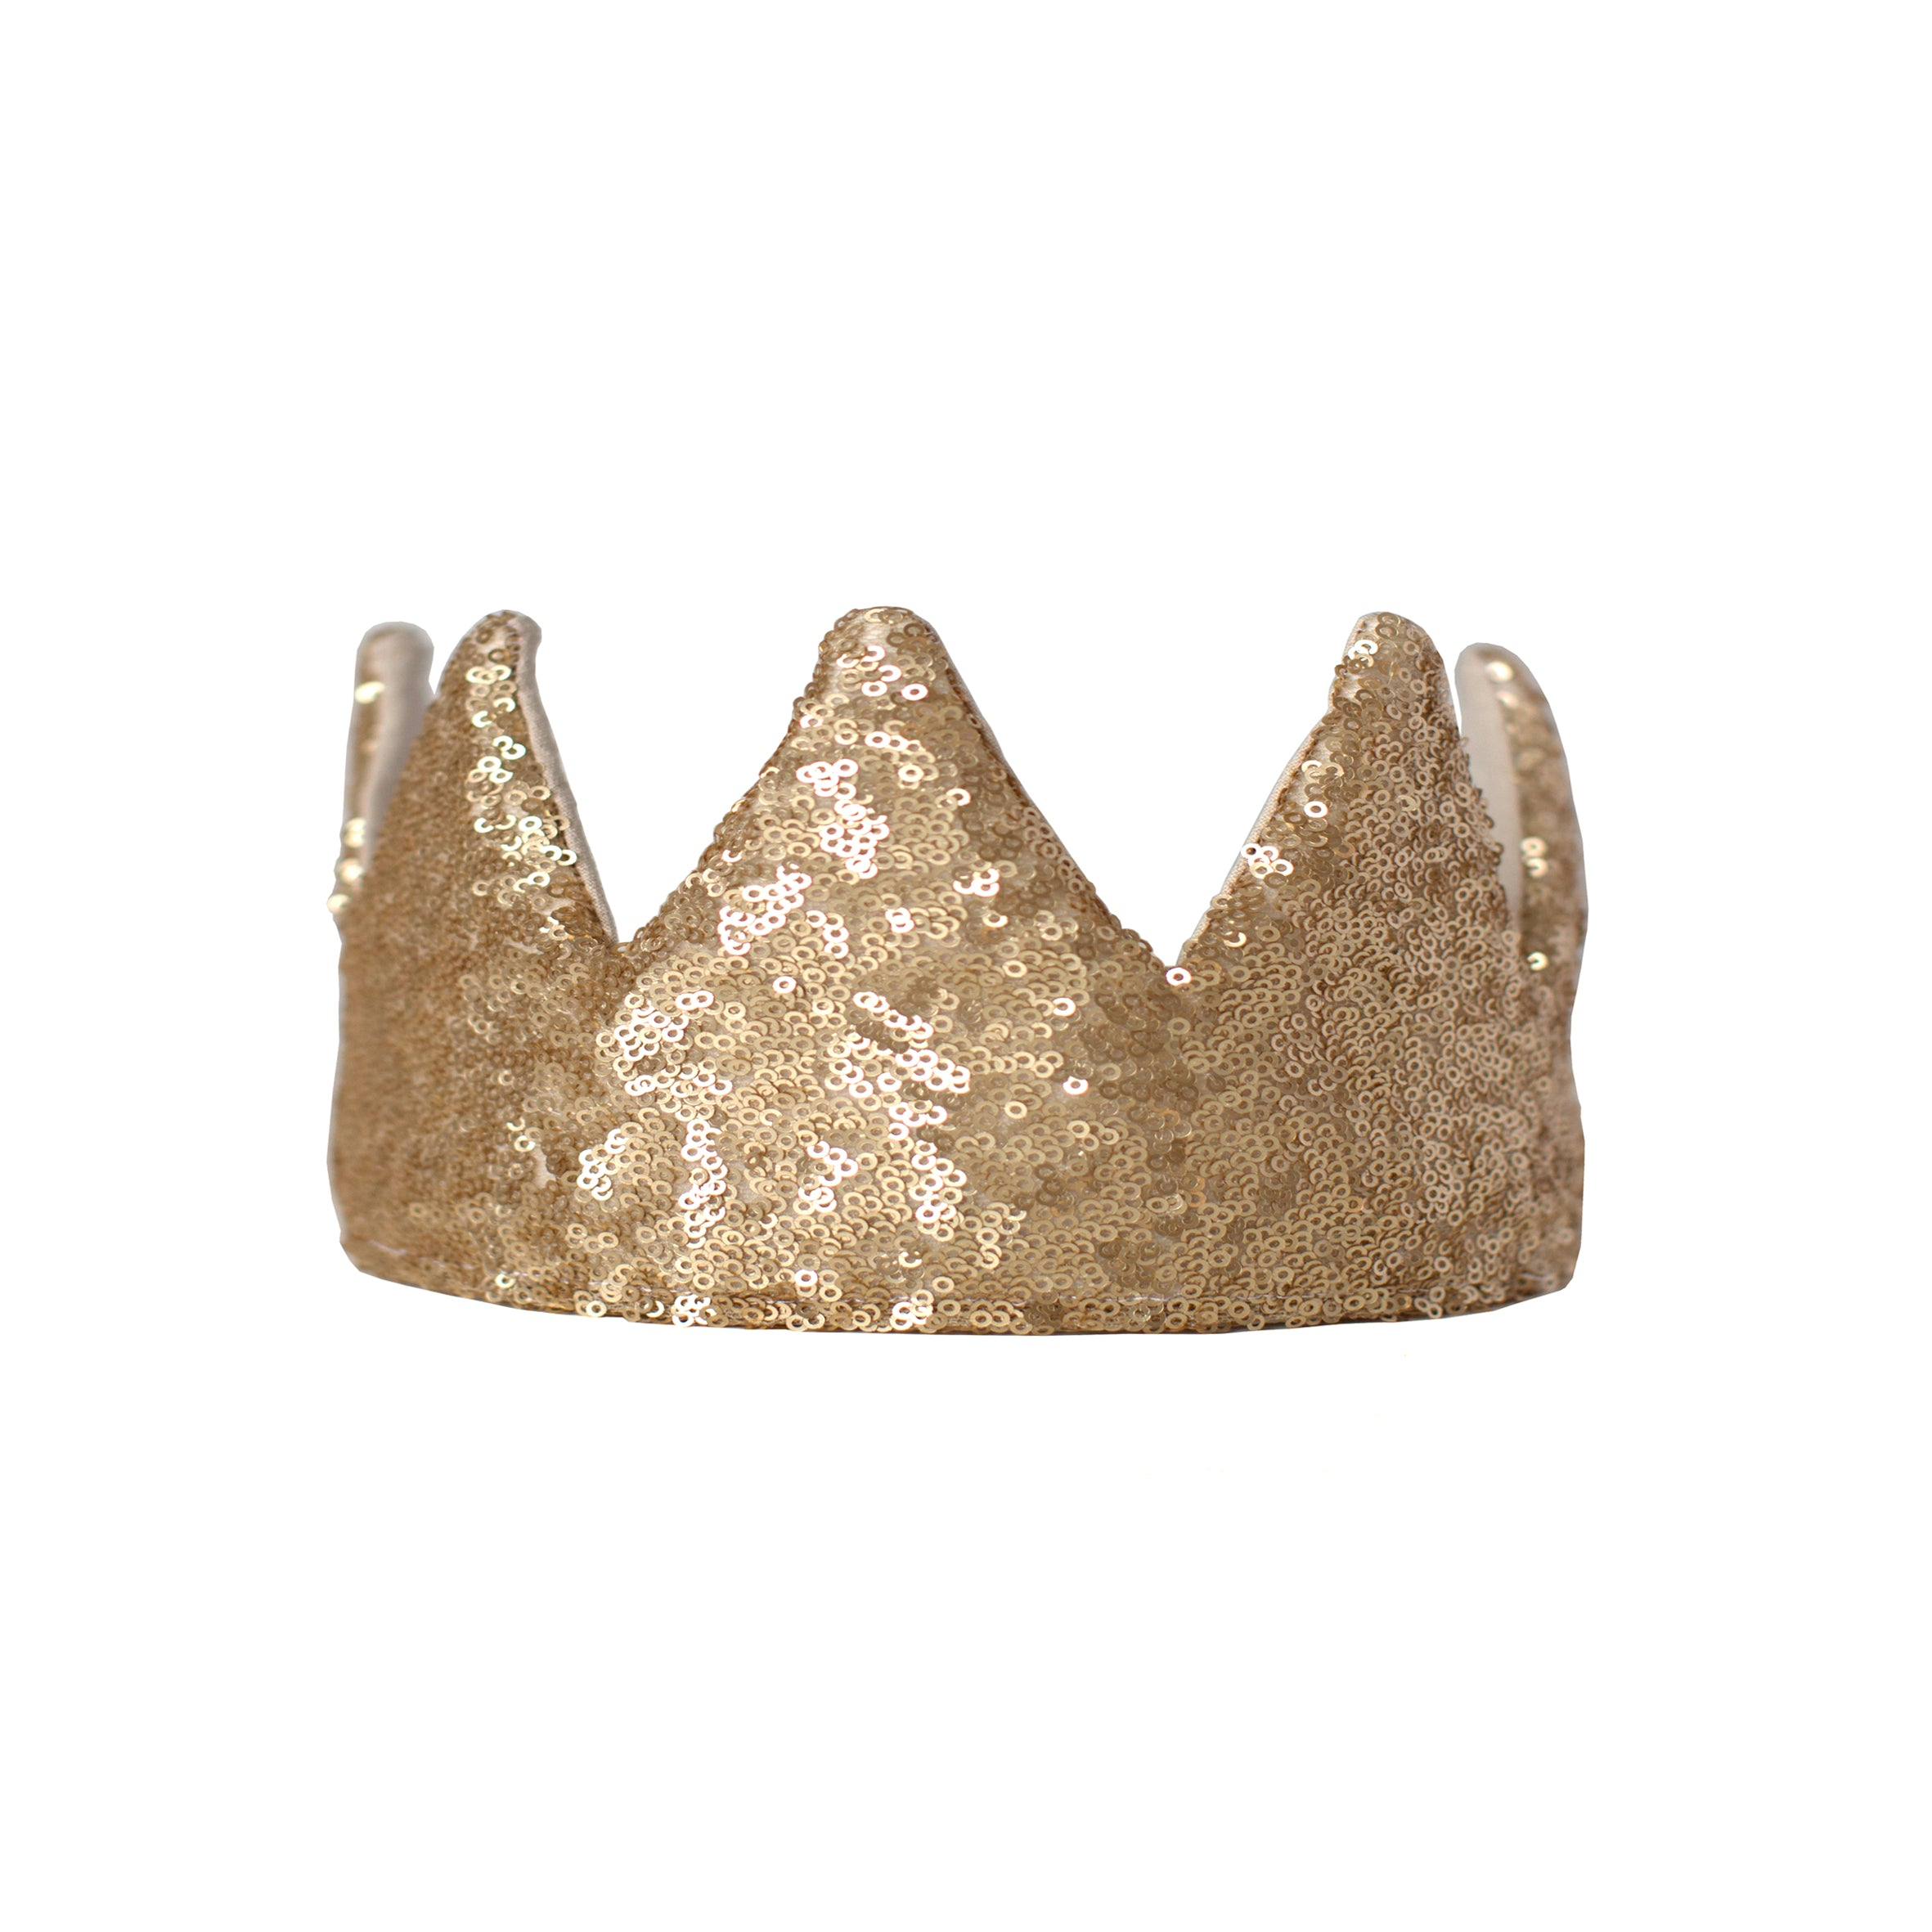 Fable Heart Toy Antique Gold Crown £10 to fit your dollies and teddies